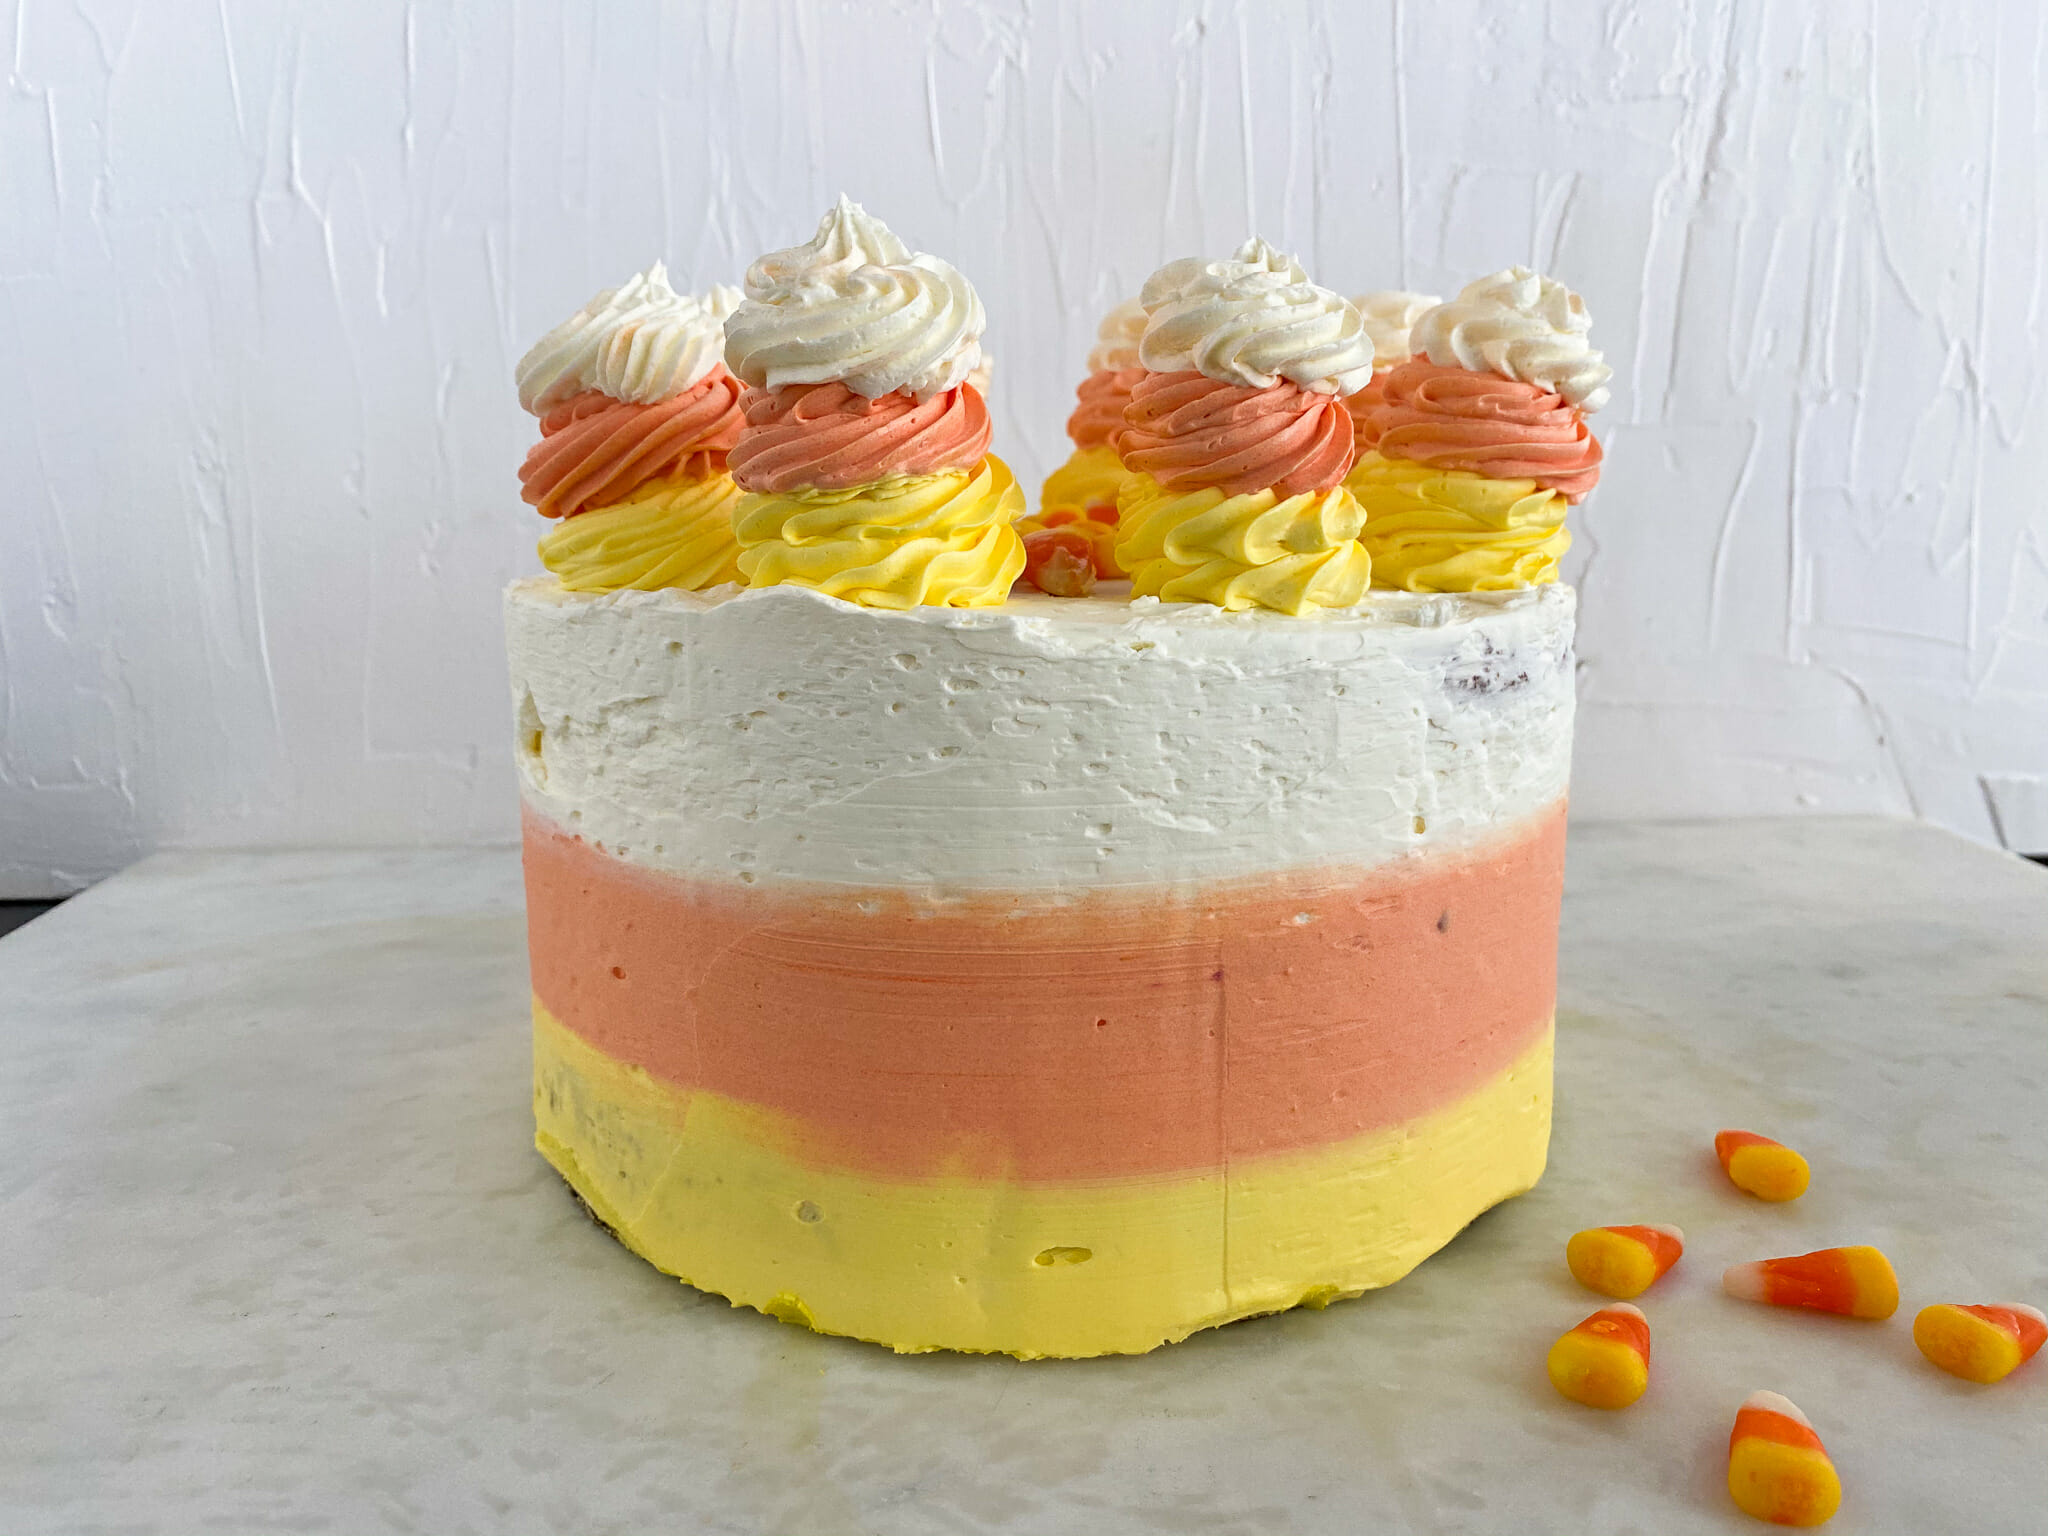 Candy Corn Cake With Candy-Color Frosting